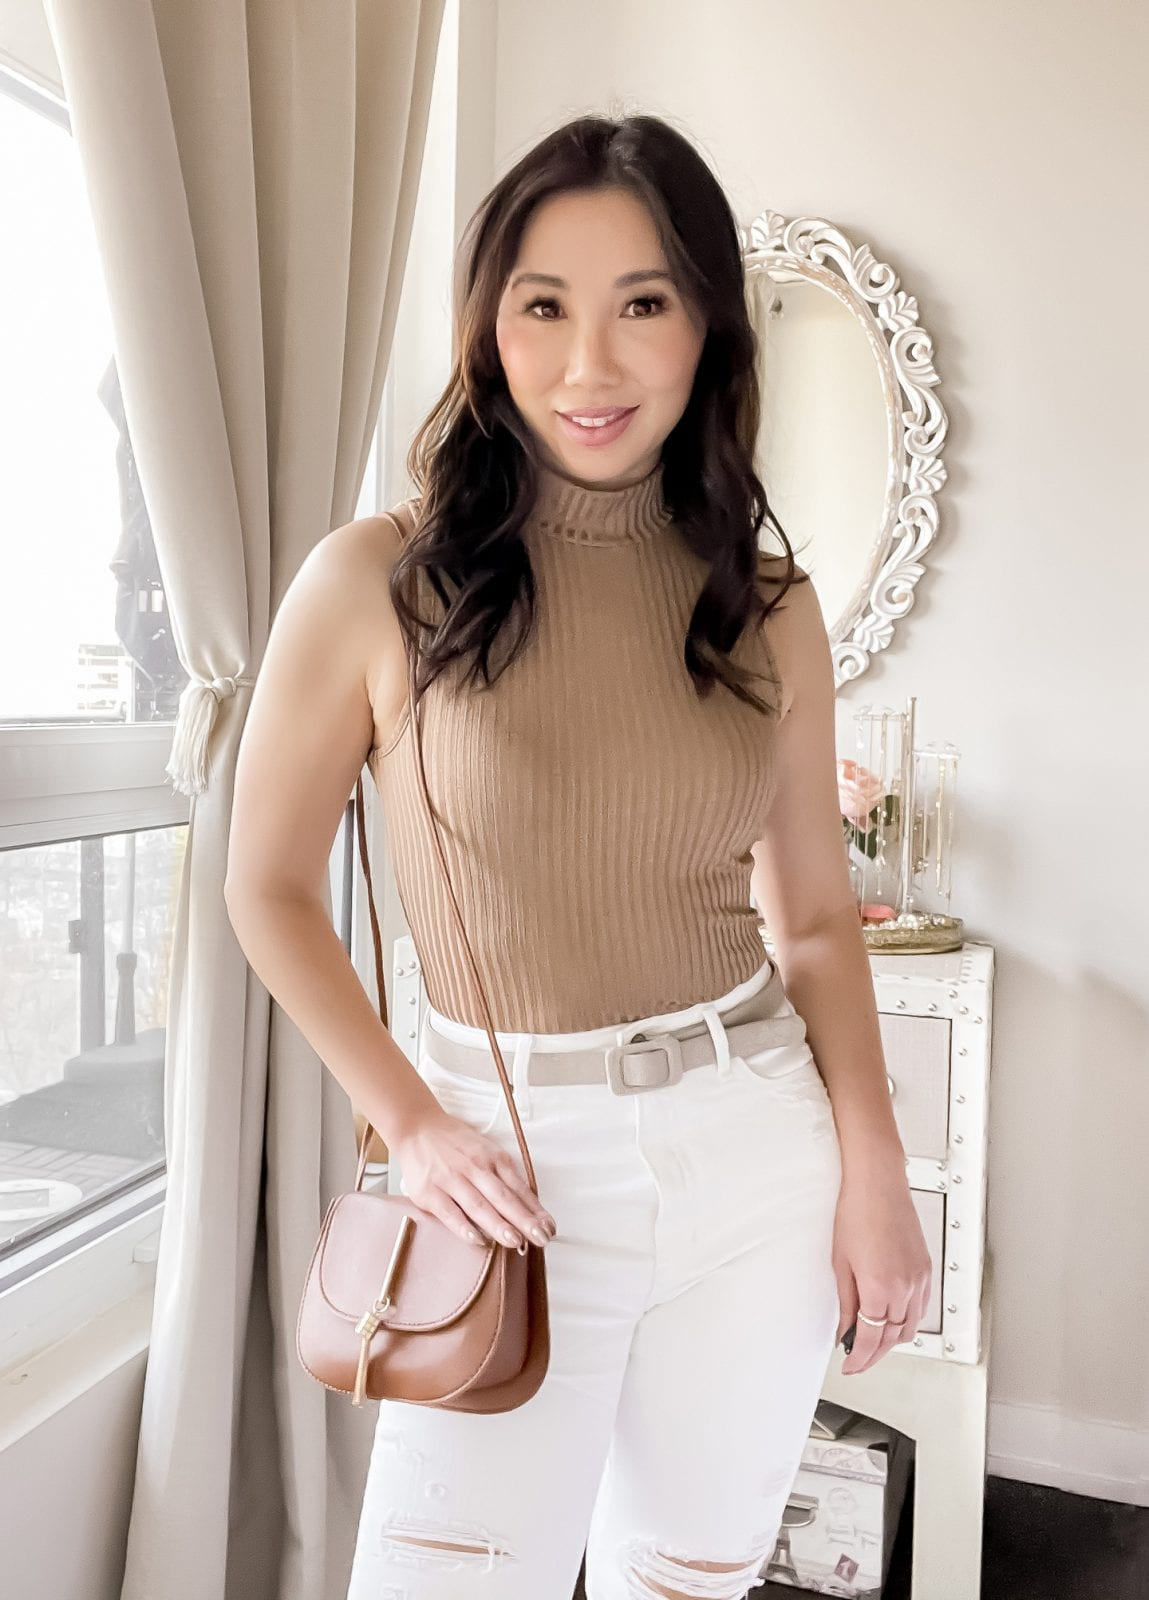 Summer outfit: cute turtleneck top with white jeans and saddle bag